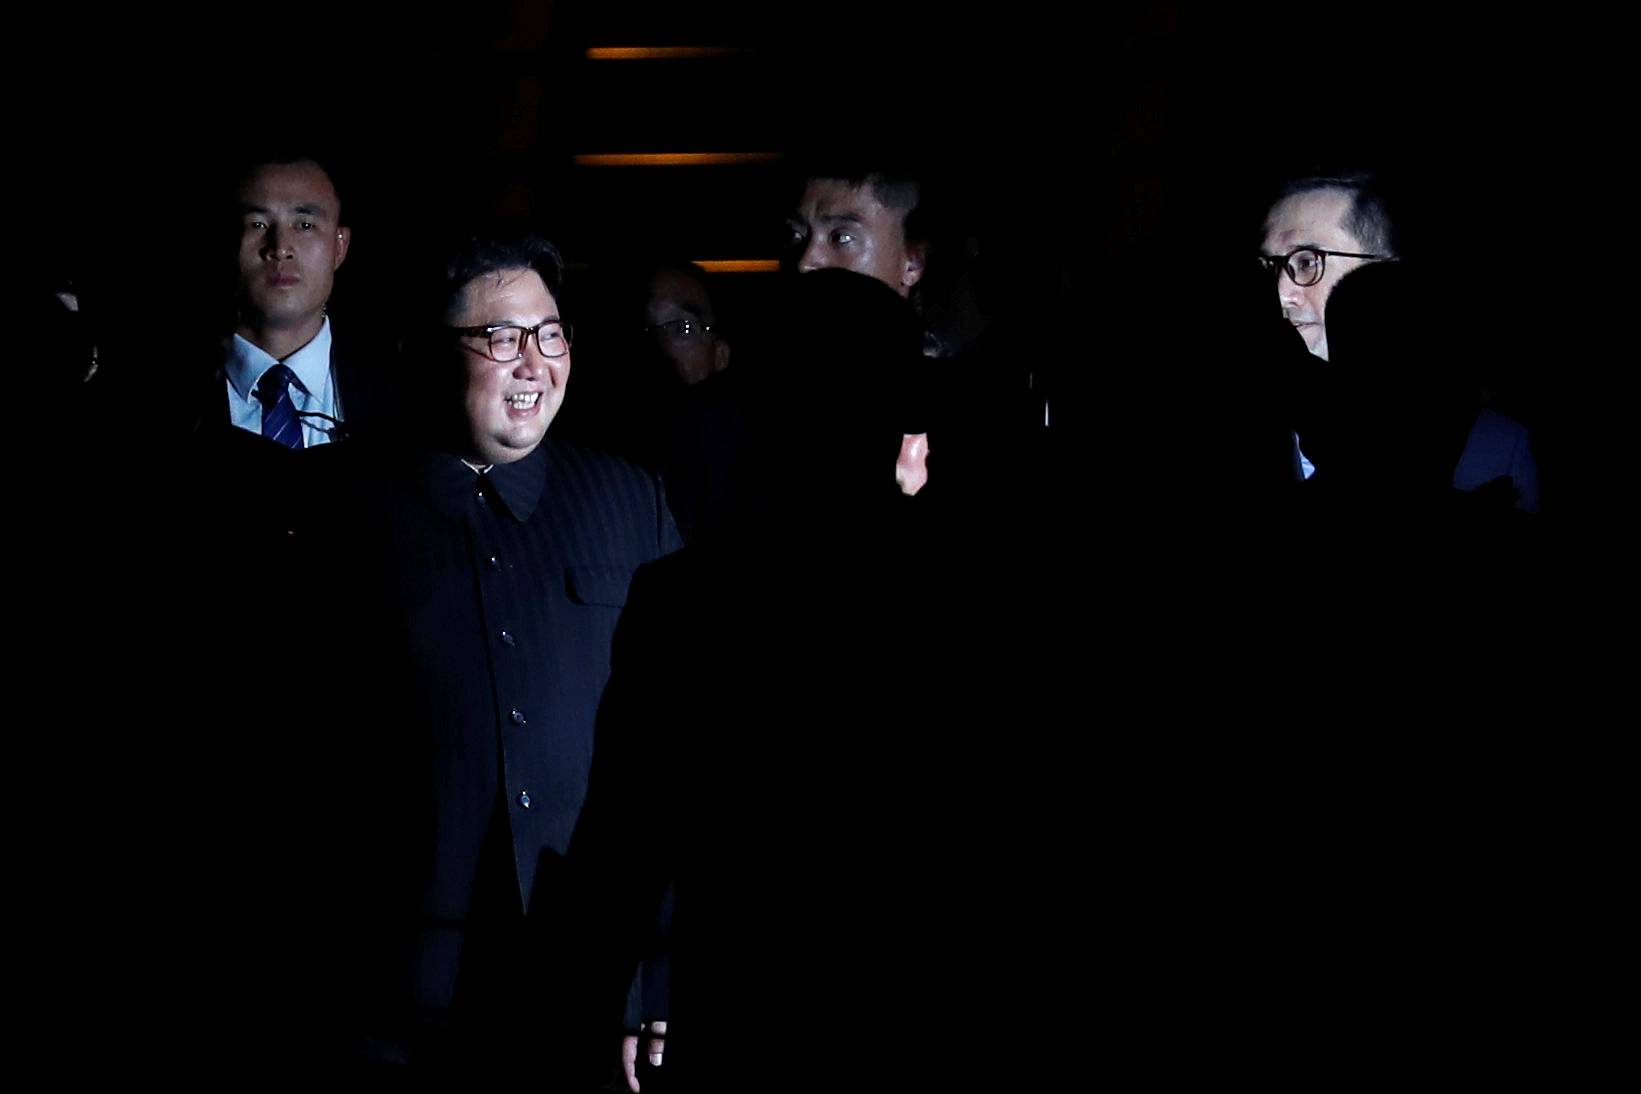 North Korea's leader Kim Jong Un is surrounded by guards as he visits Merlion Park in Singapore